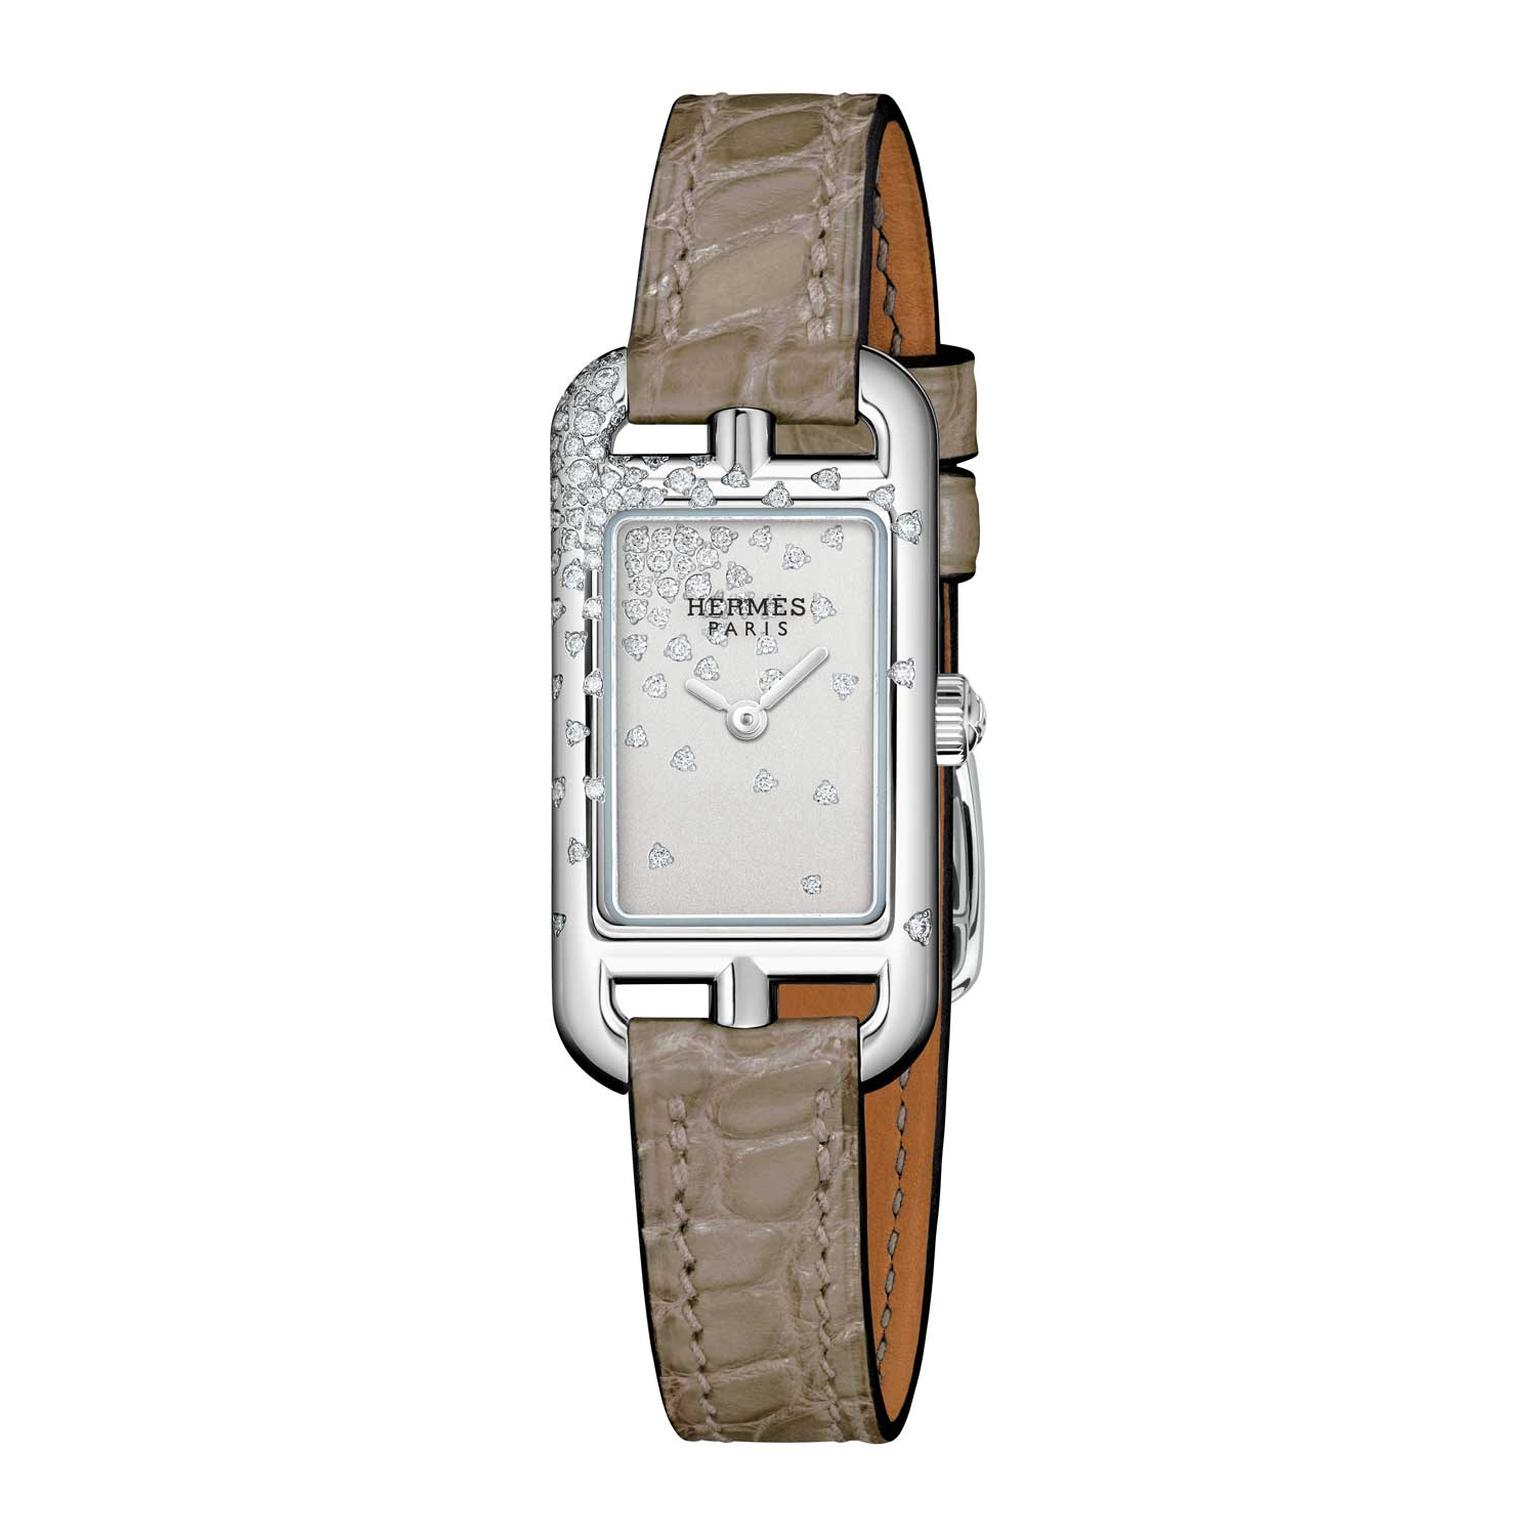 Hermes Nantucket Jete de diamants watch with brown alligator leather strap